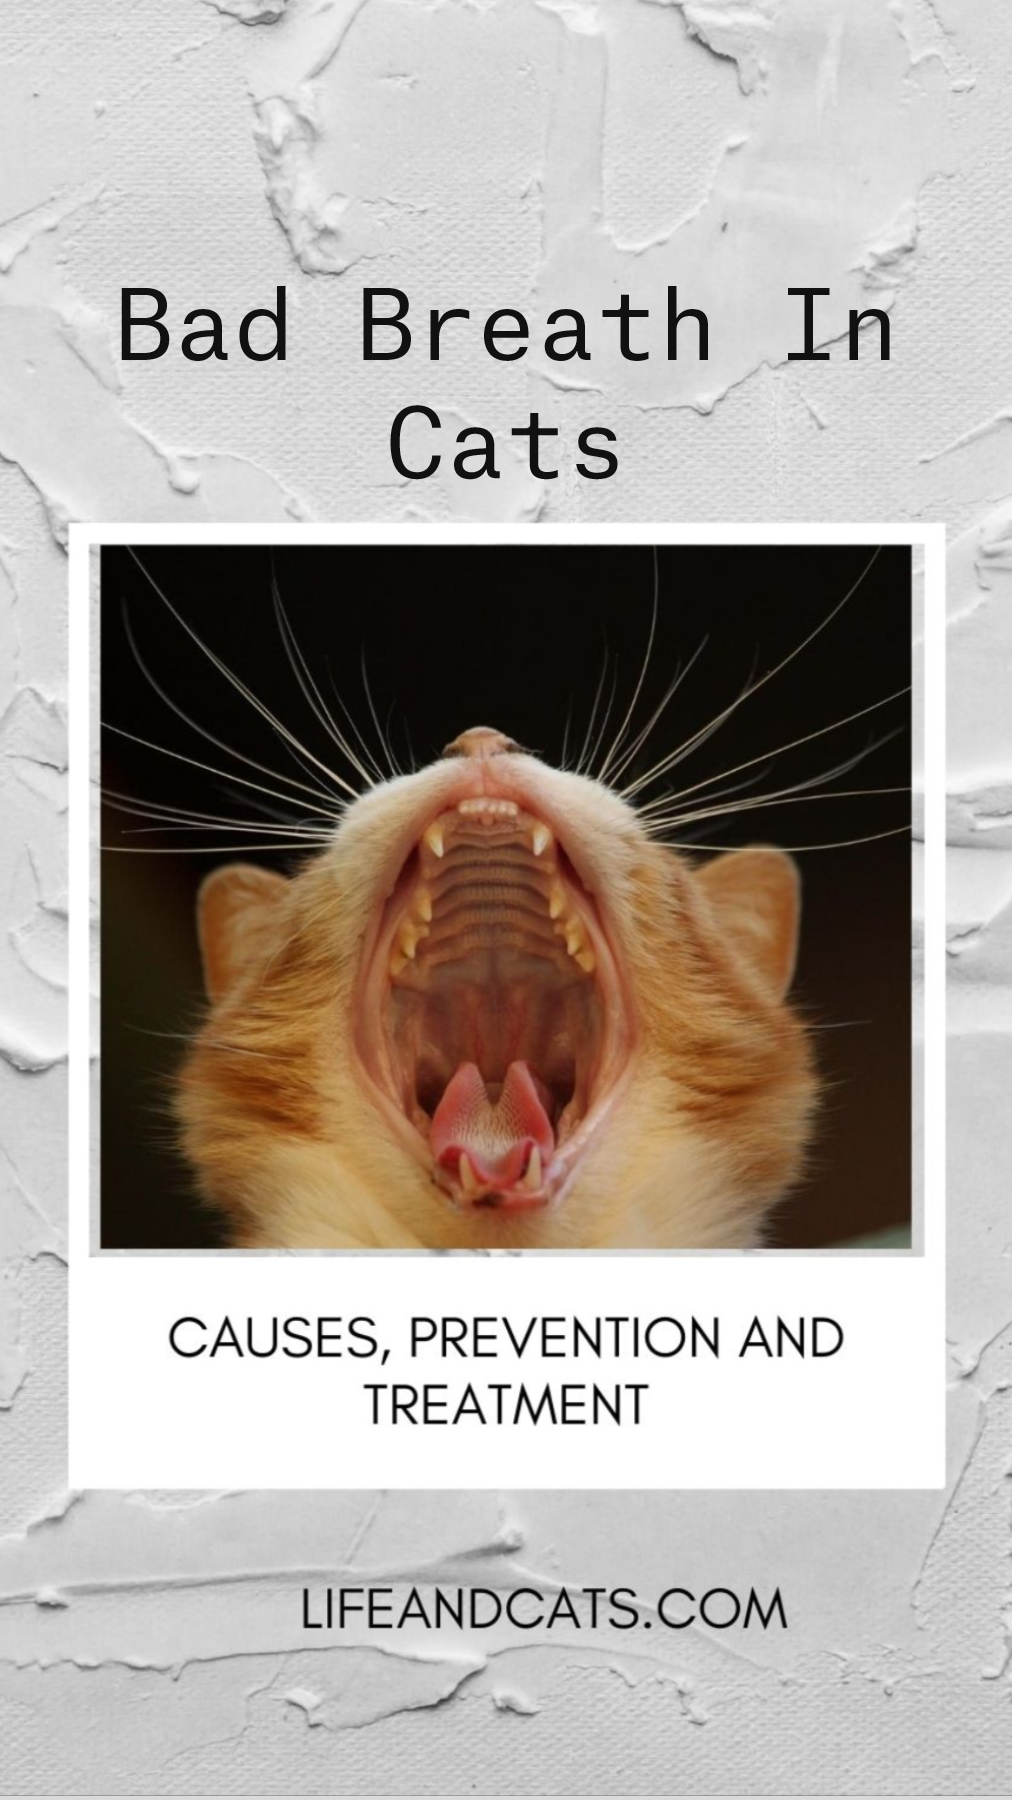 Bad Breath In Cats An Immersive Guide By Life Cats Cat And Kitten Care Tips